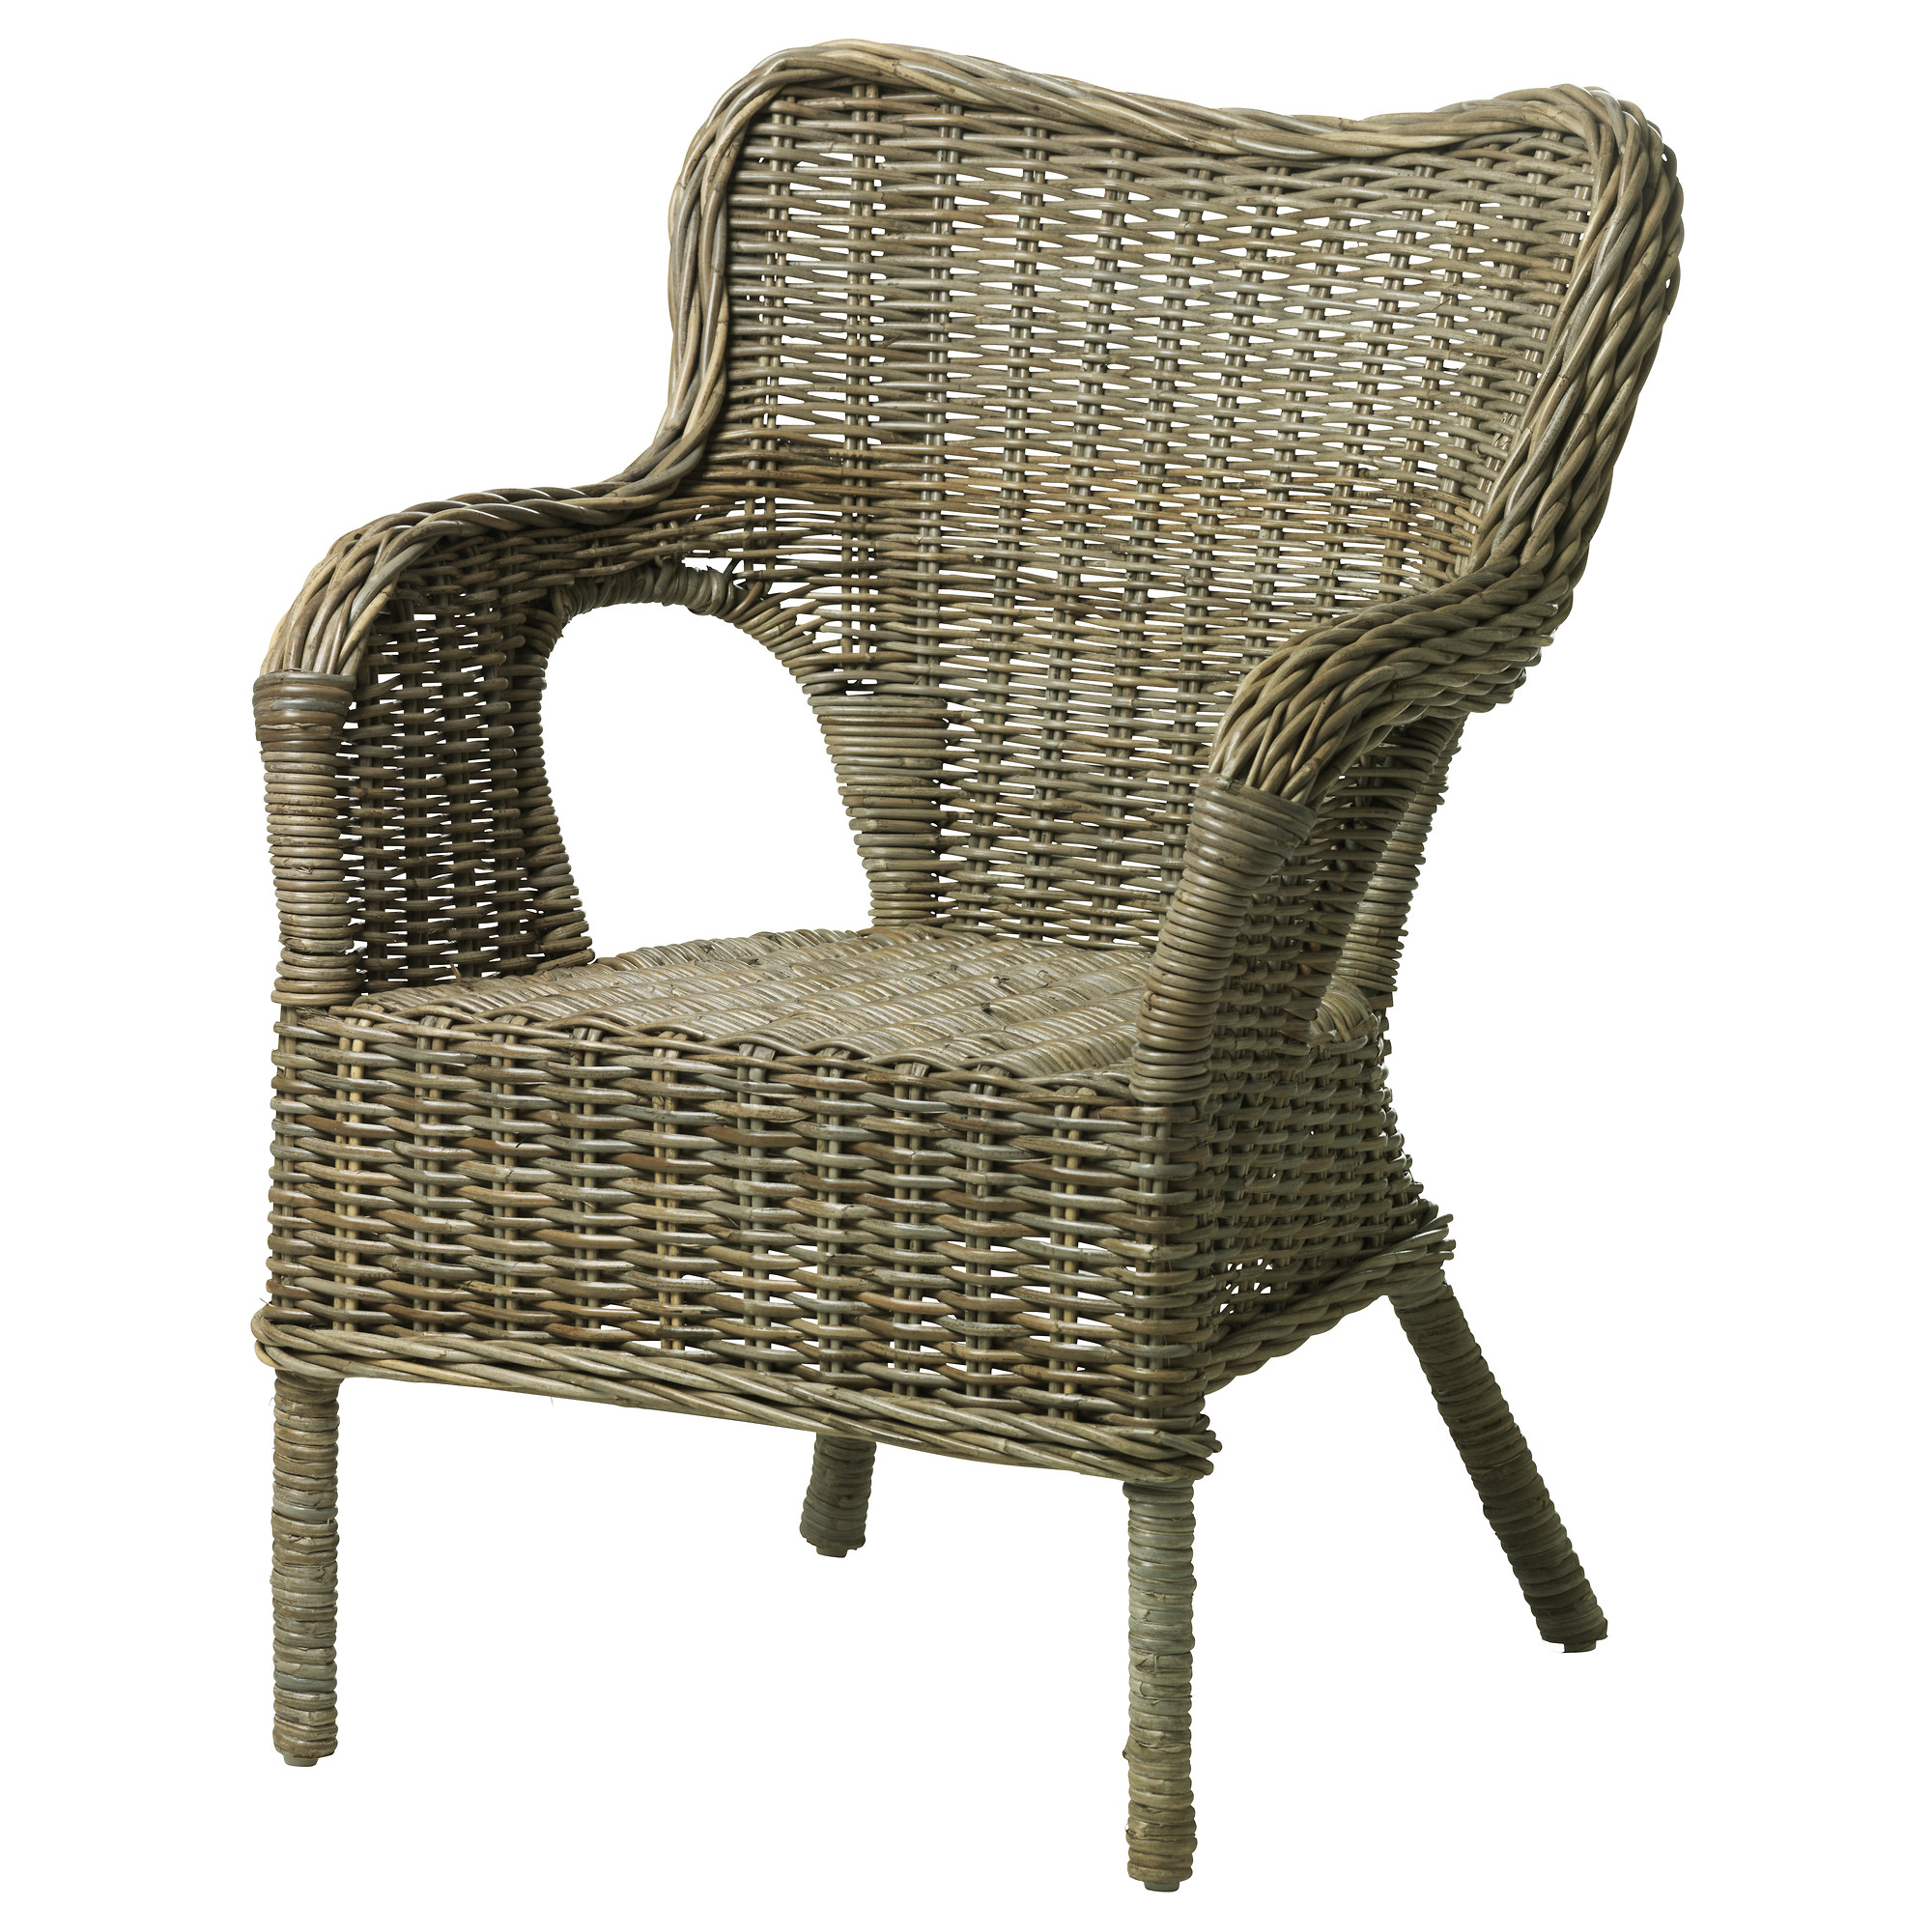 Photos of wicker chairs byholma armchair - ikea lfibxkp